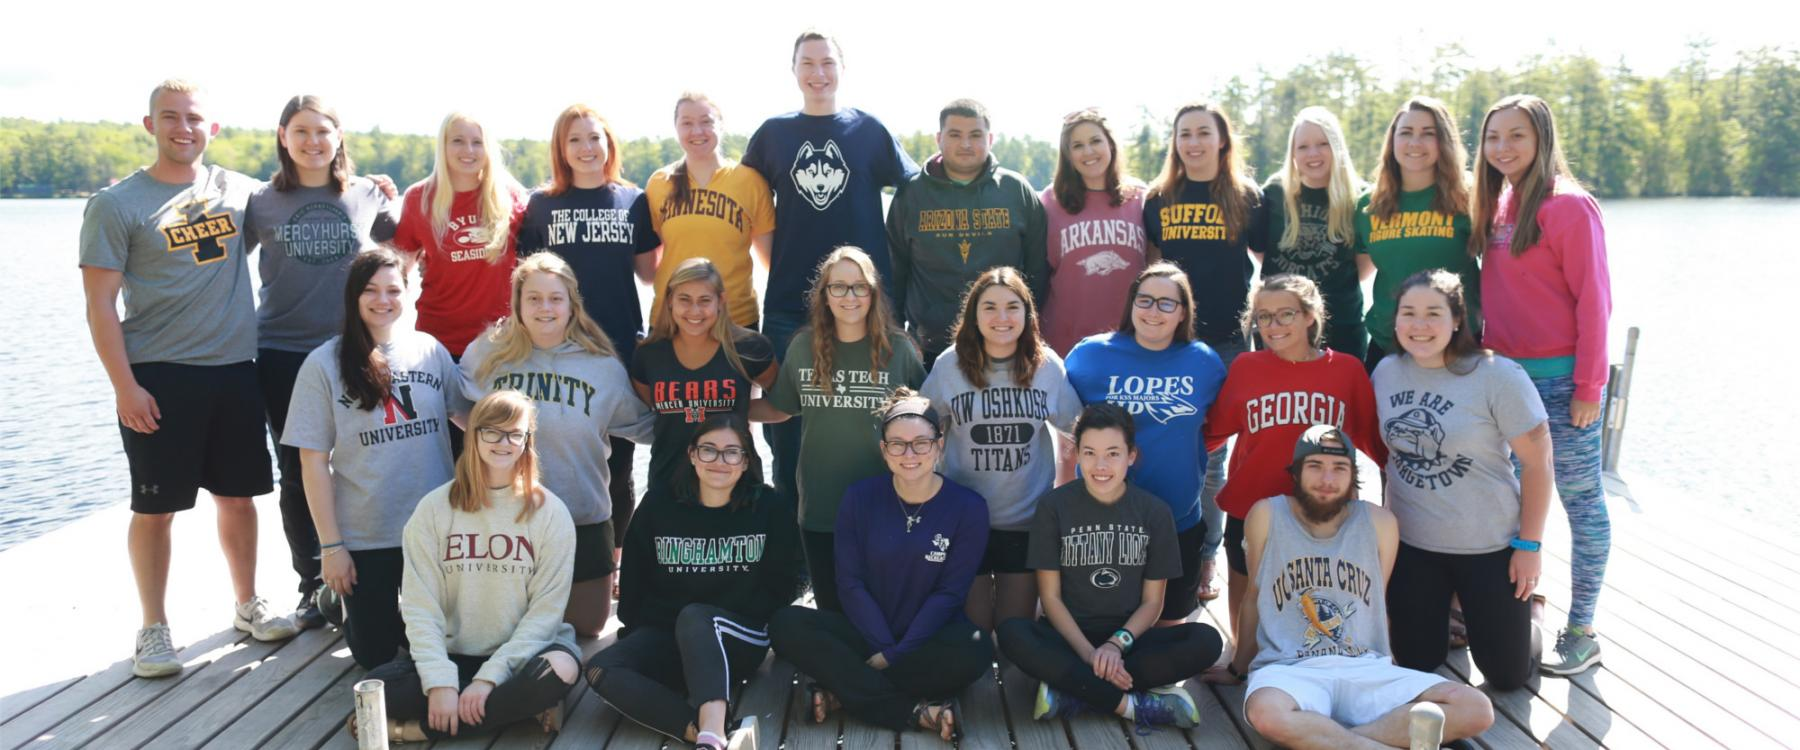 Students wearing sweatshirts from their colleges